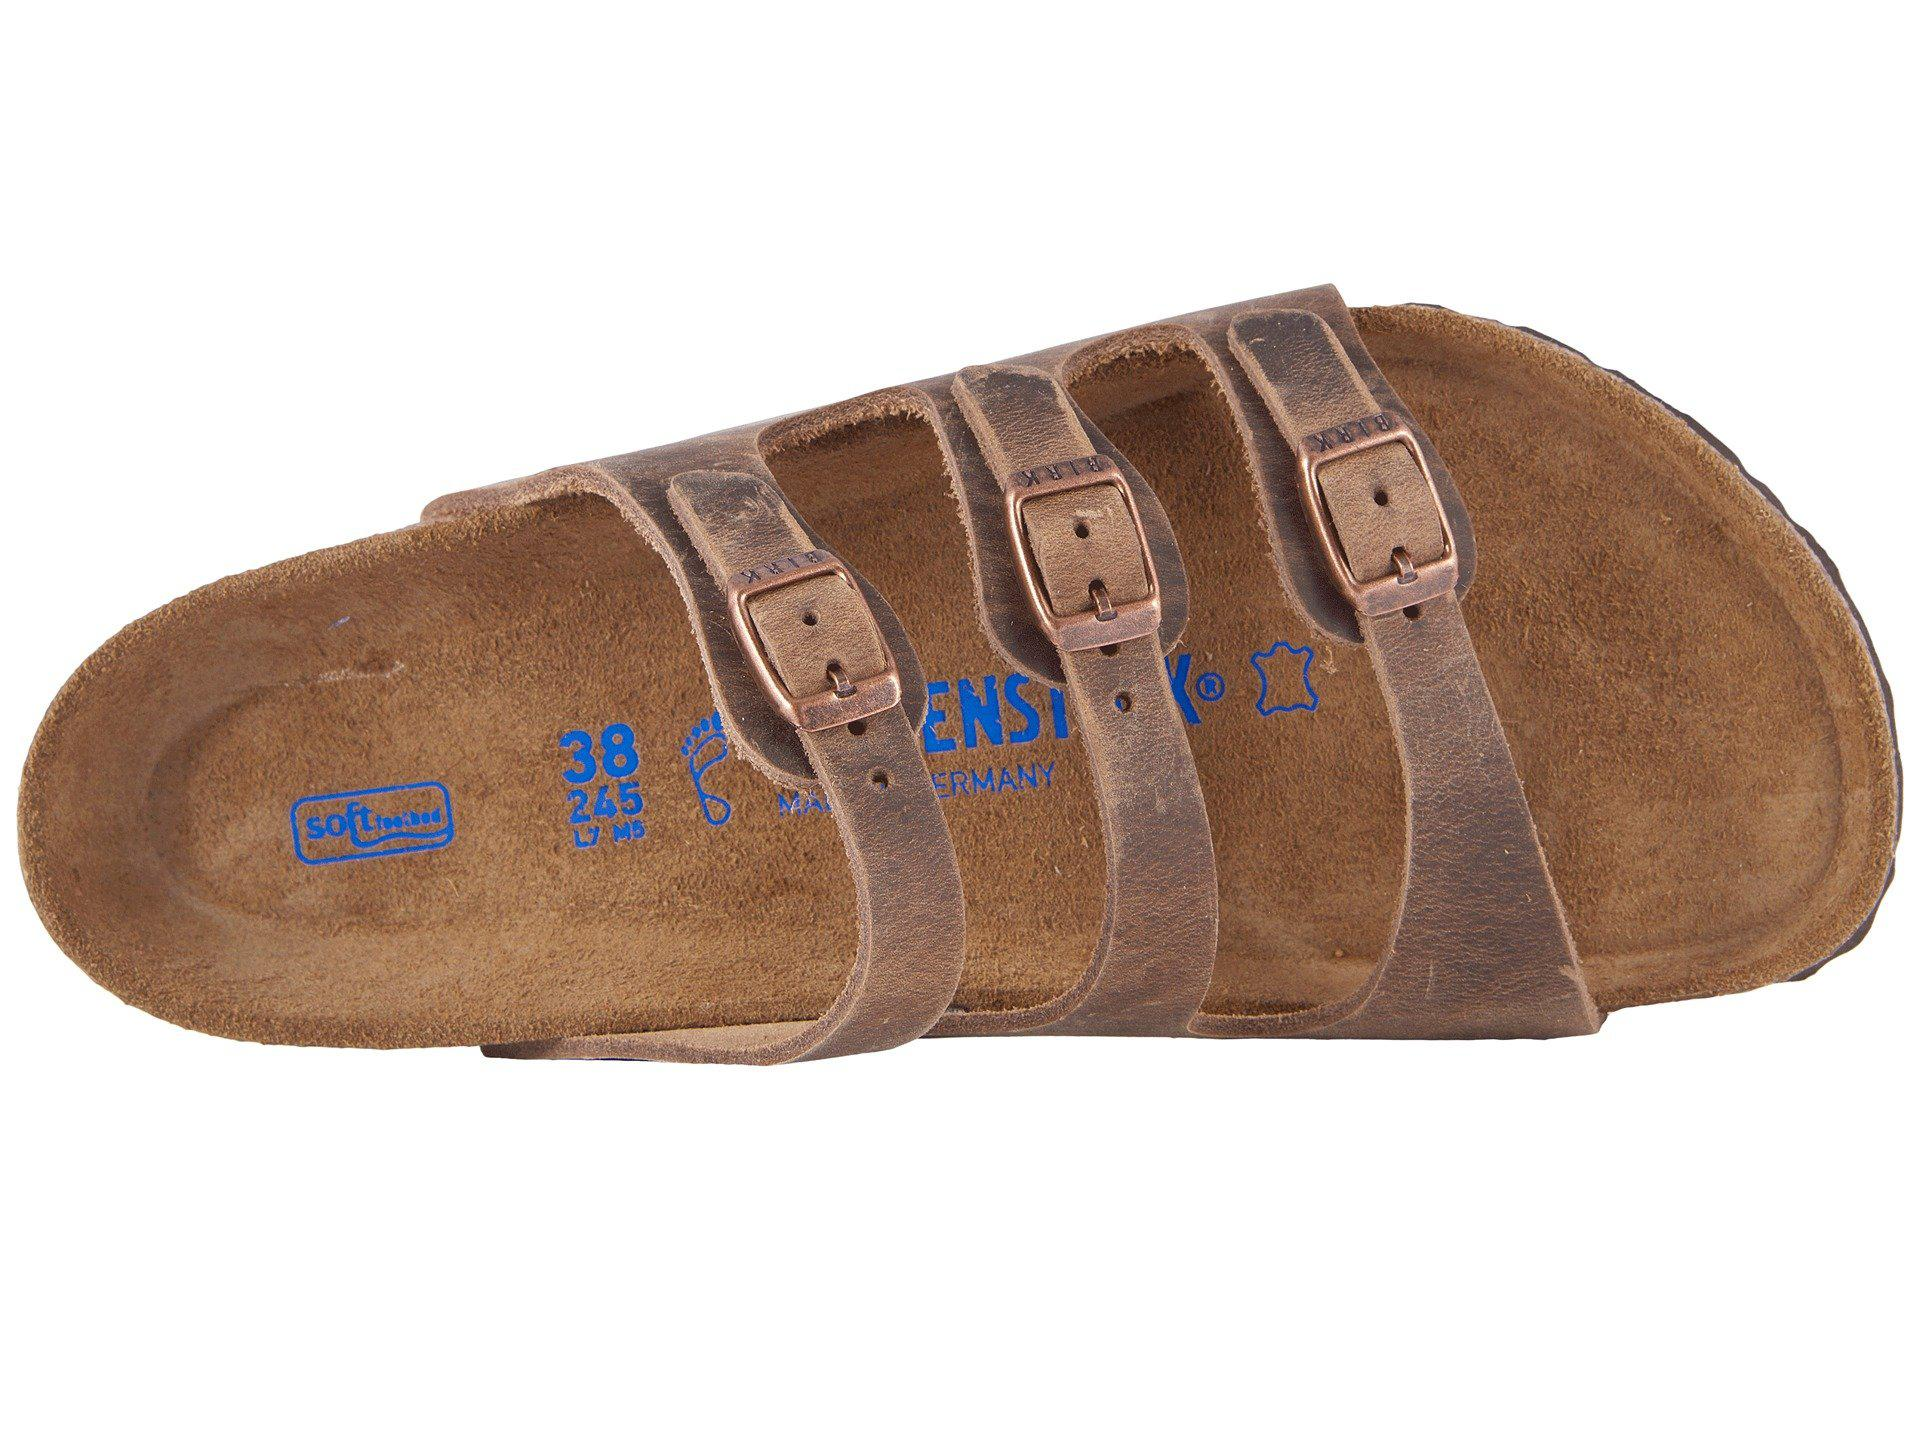 770b98700af1 Birkenstock - Brown Florida Soft Footbed - Leather (black Oiled Leather)  Women s Sandals -. View fullscreen